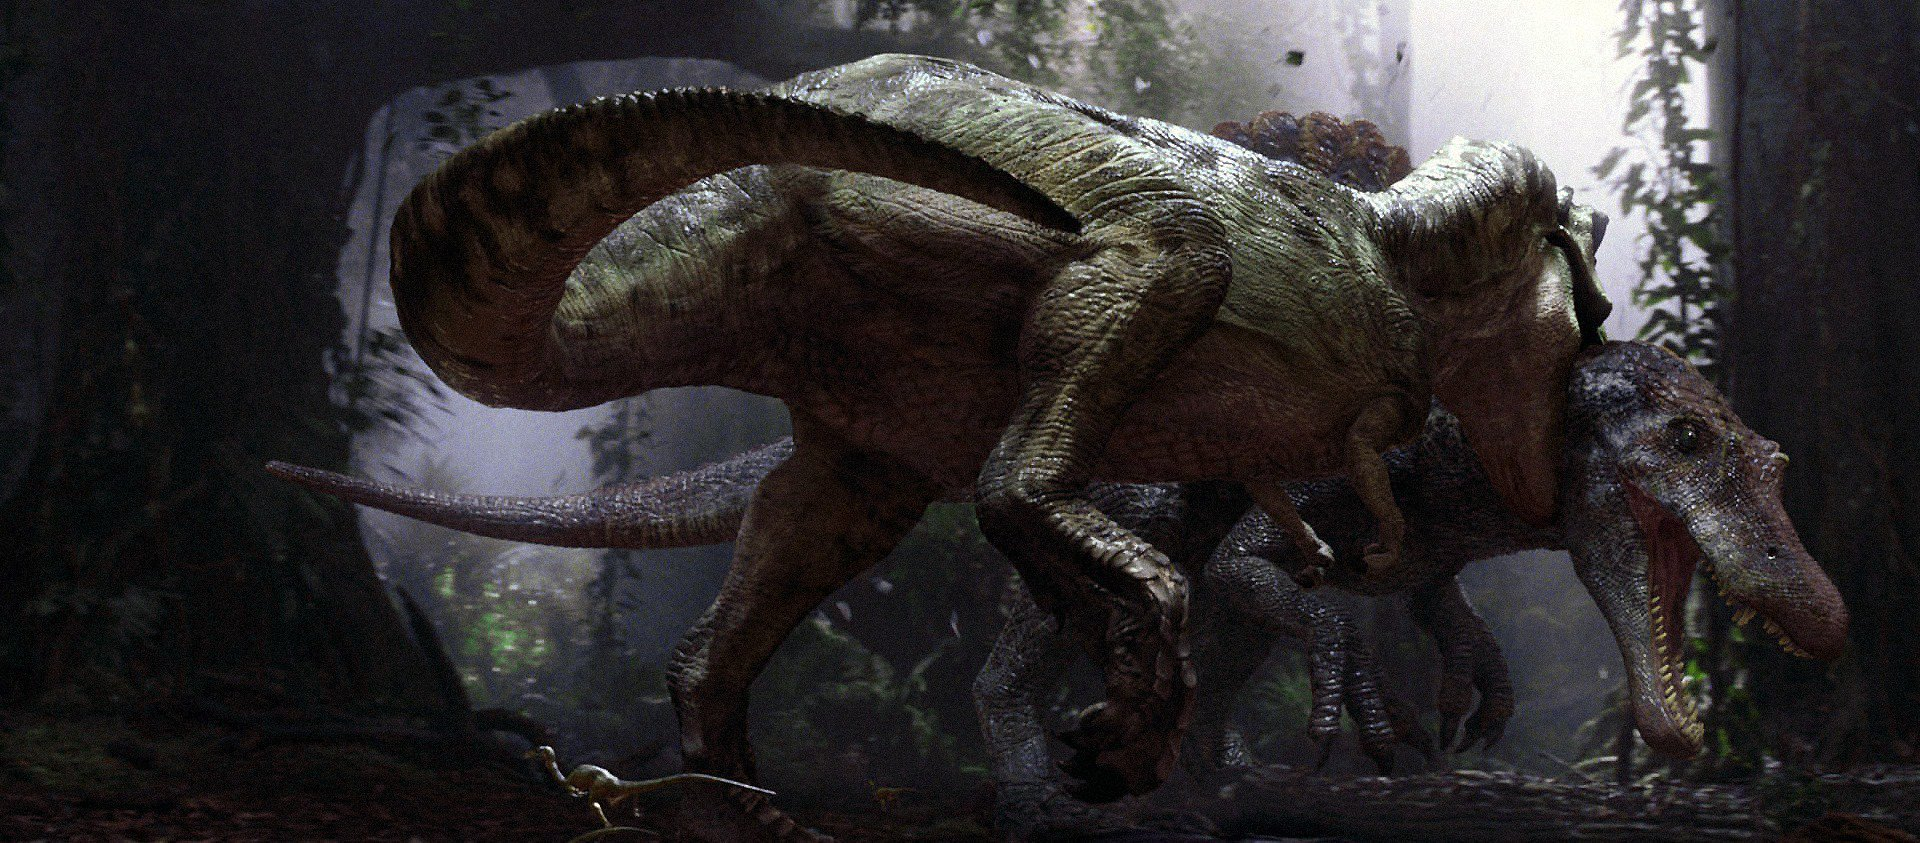 Opinion: Jurassic Park 3's Importance to the Franchise - #JP25 https://t.co/MEJEUVDeaY https://t.co/WLYprh2rLt